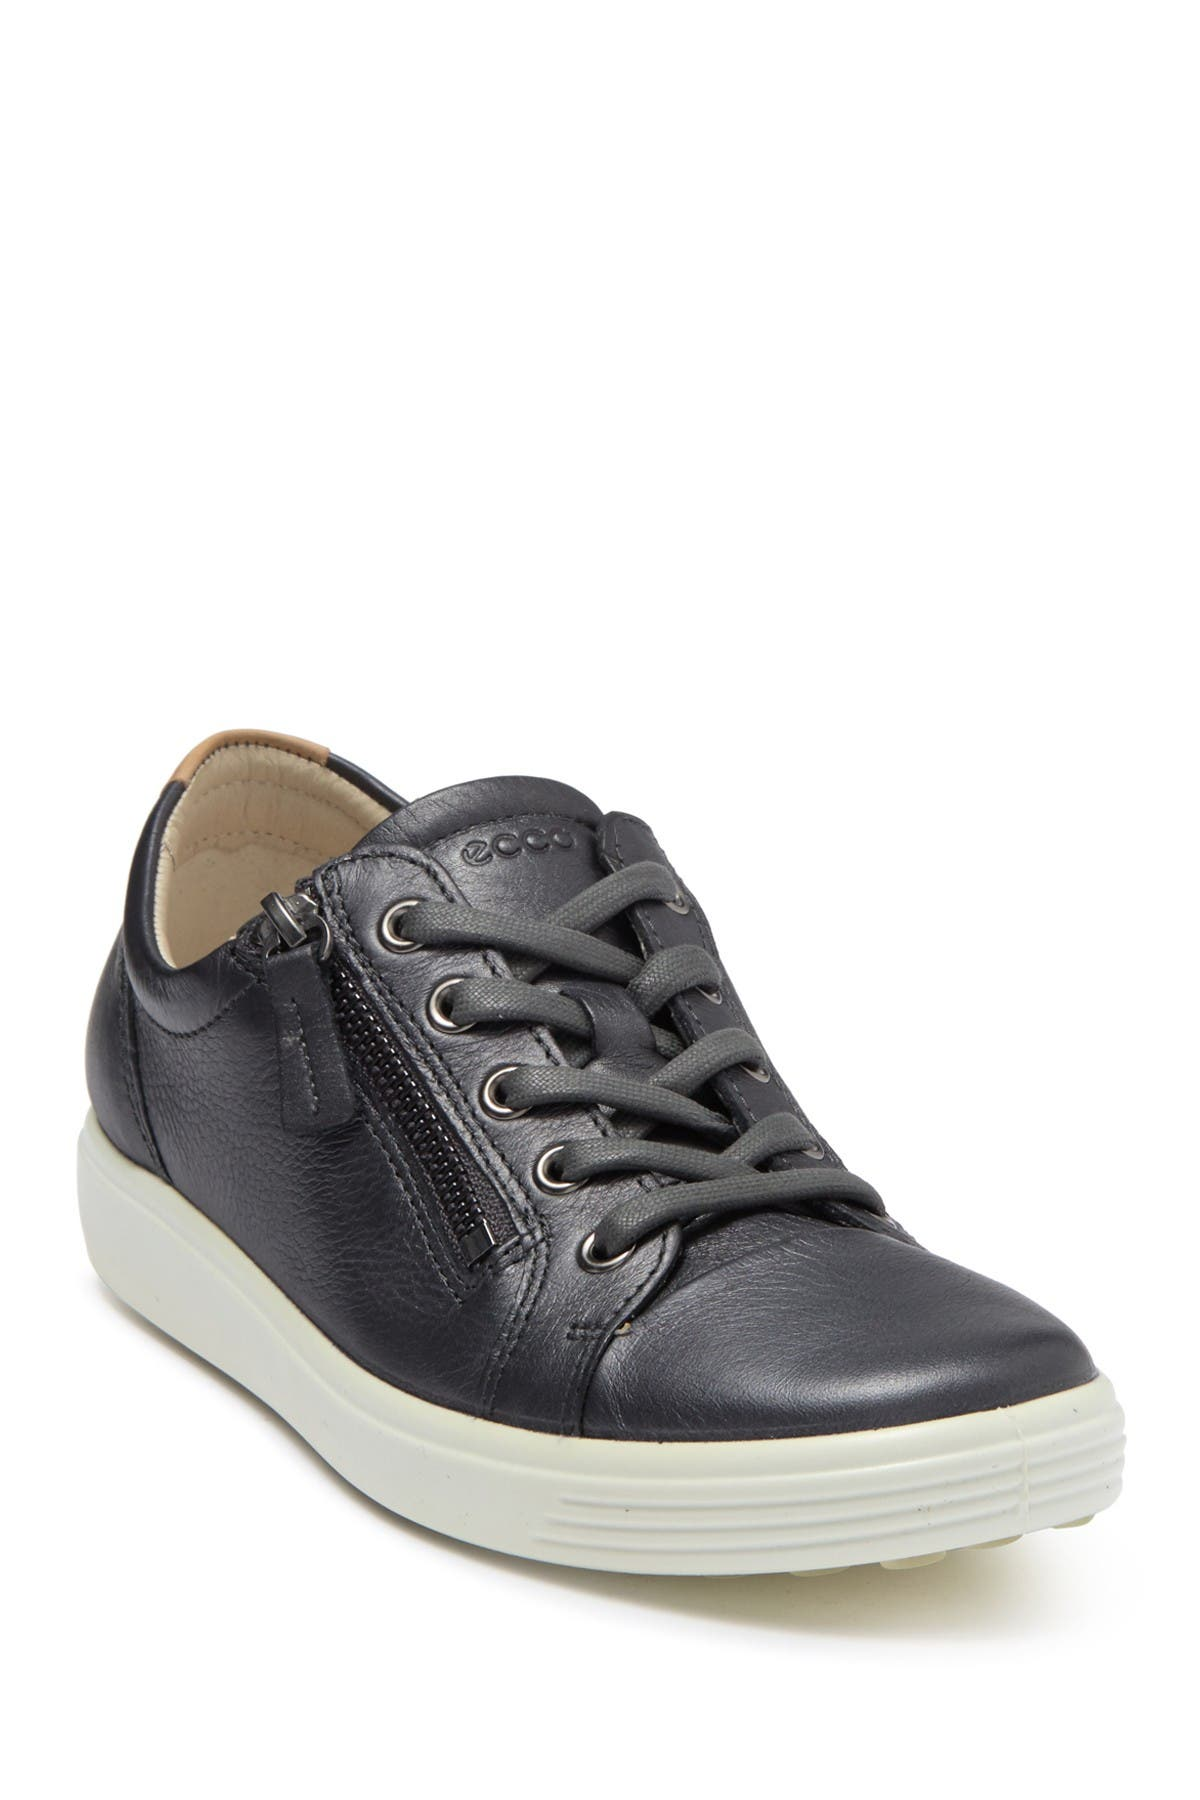 Image of ECCO Soft 7 Leather Sneaker